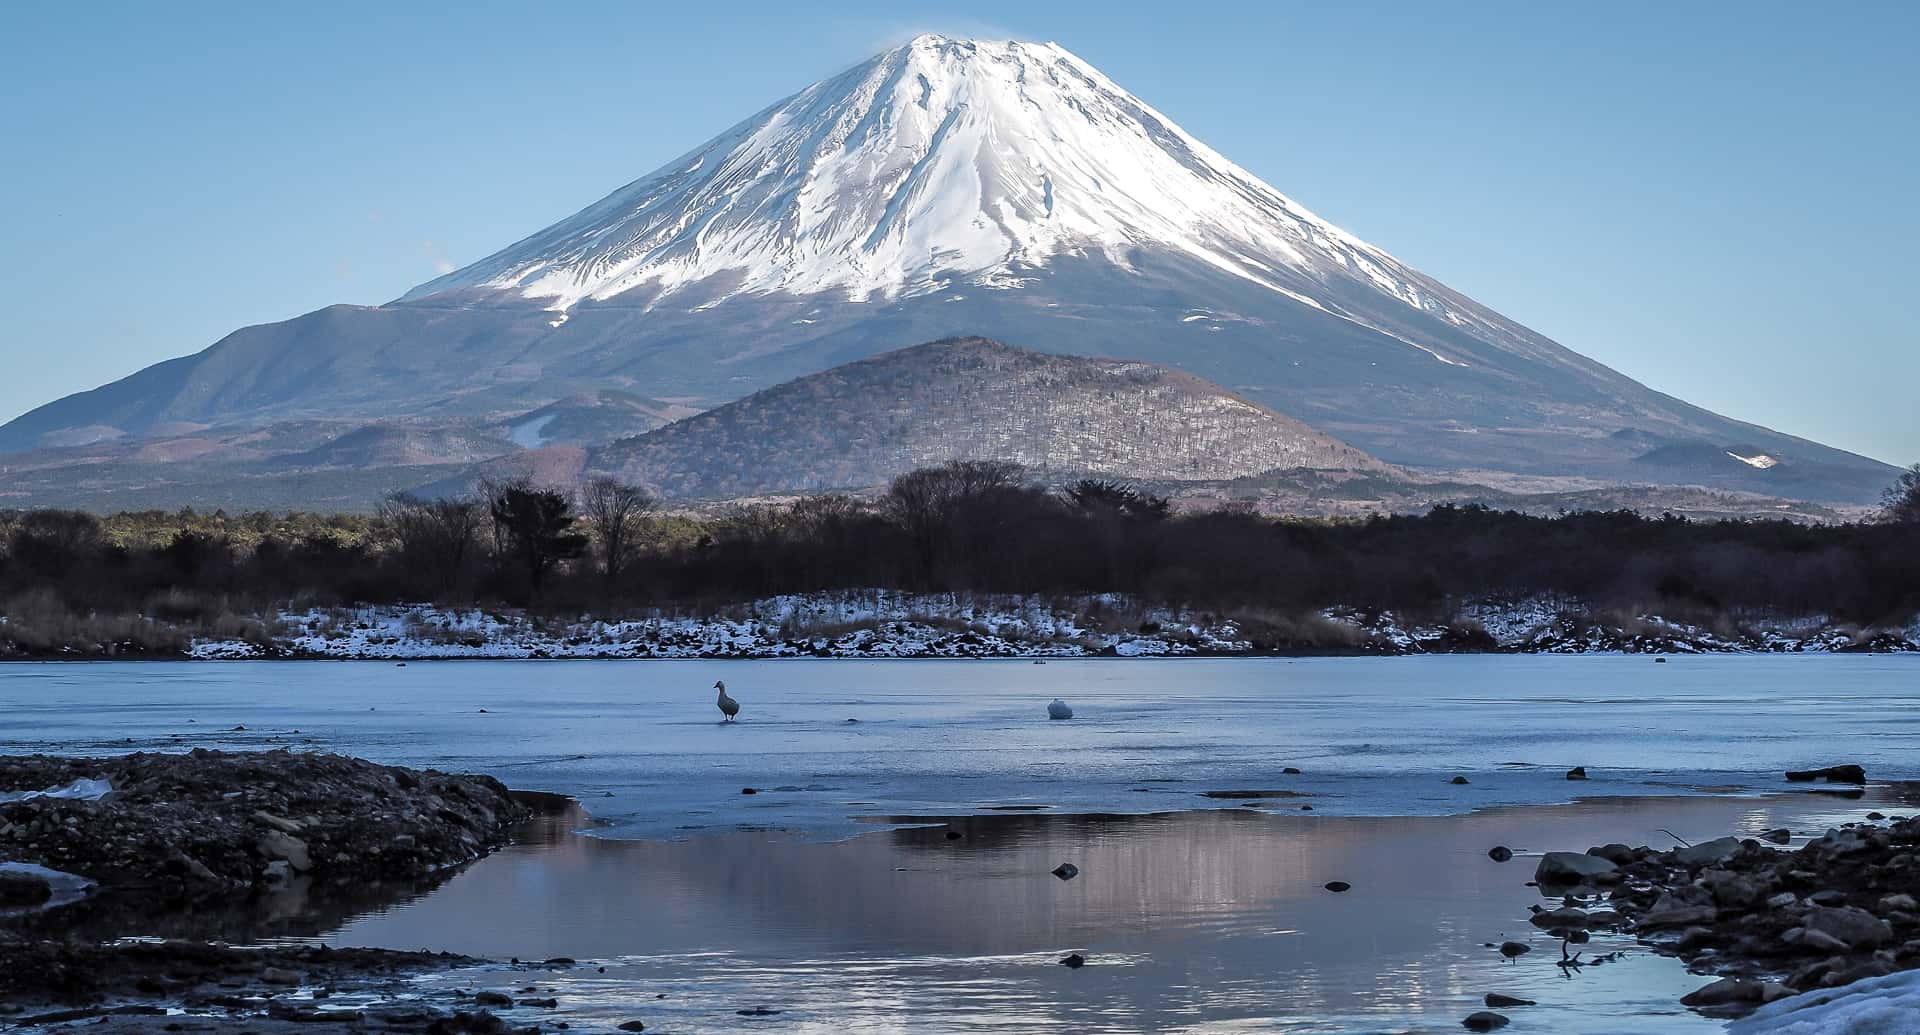 10 best spots to see Mt. Fuji